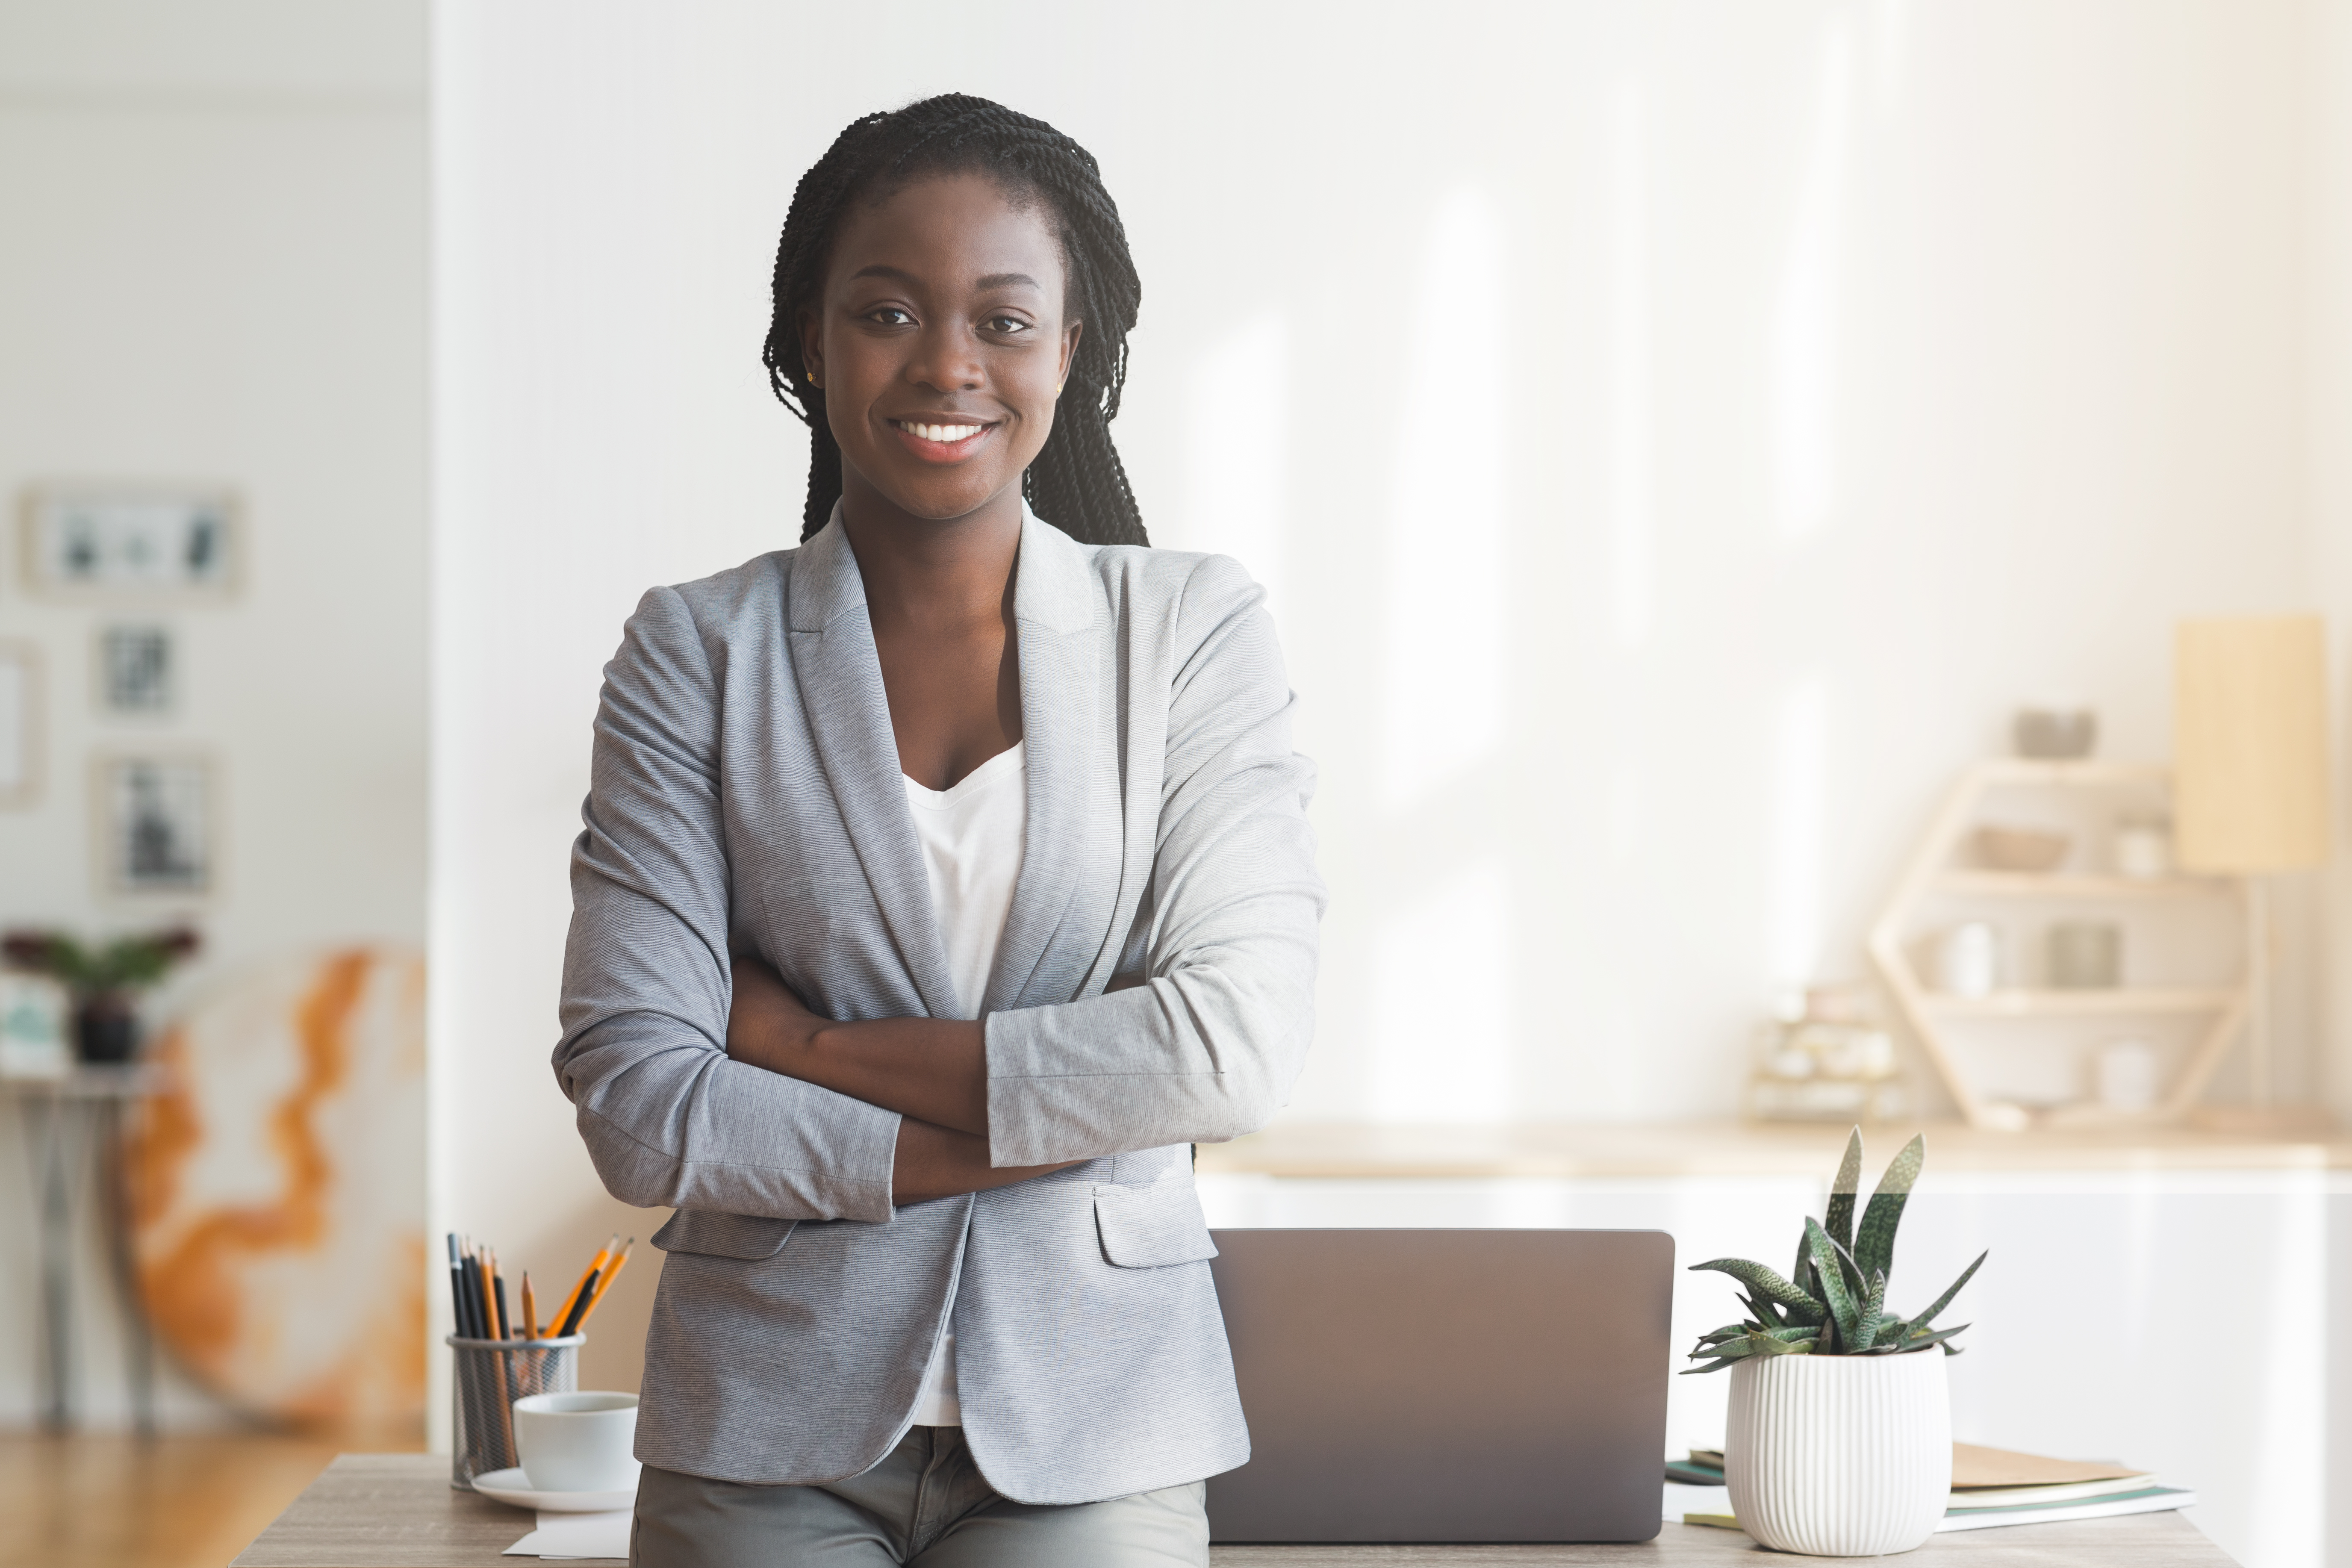 Don't Sell Yourself Short! 5 Ways for Women to Get Equal Pay